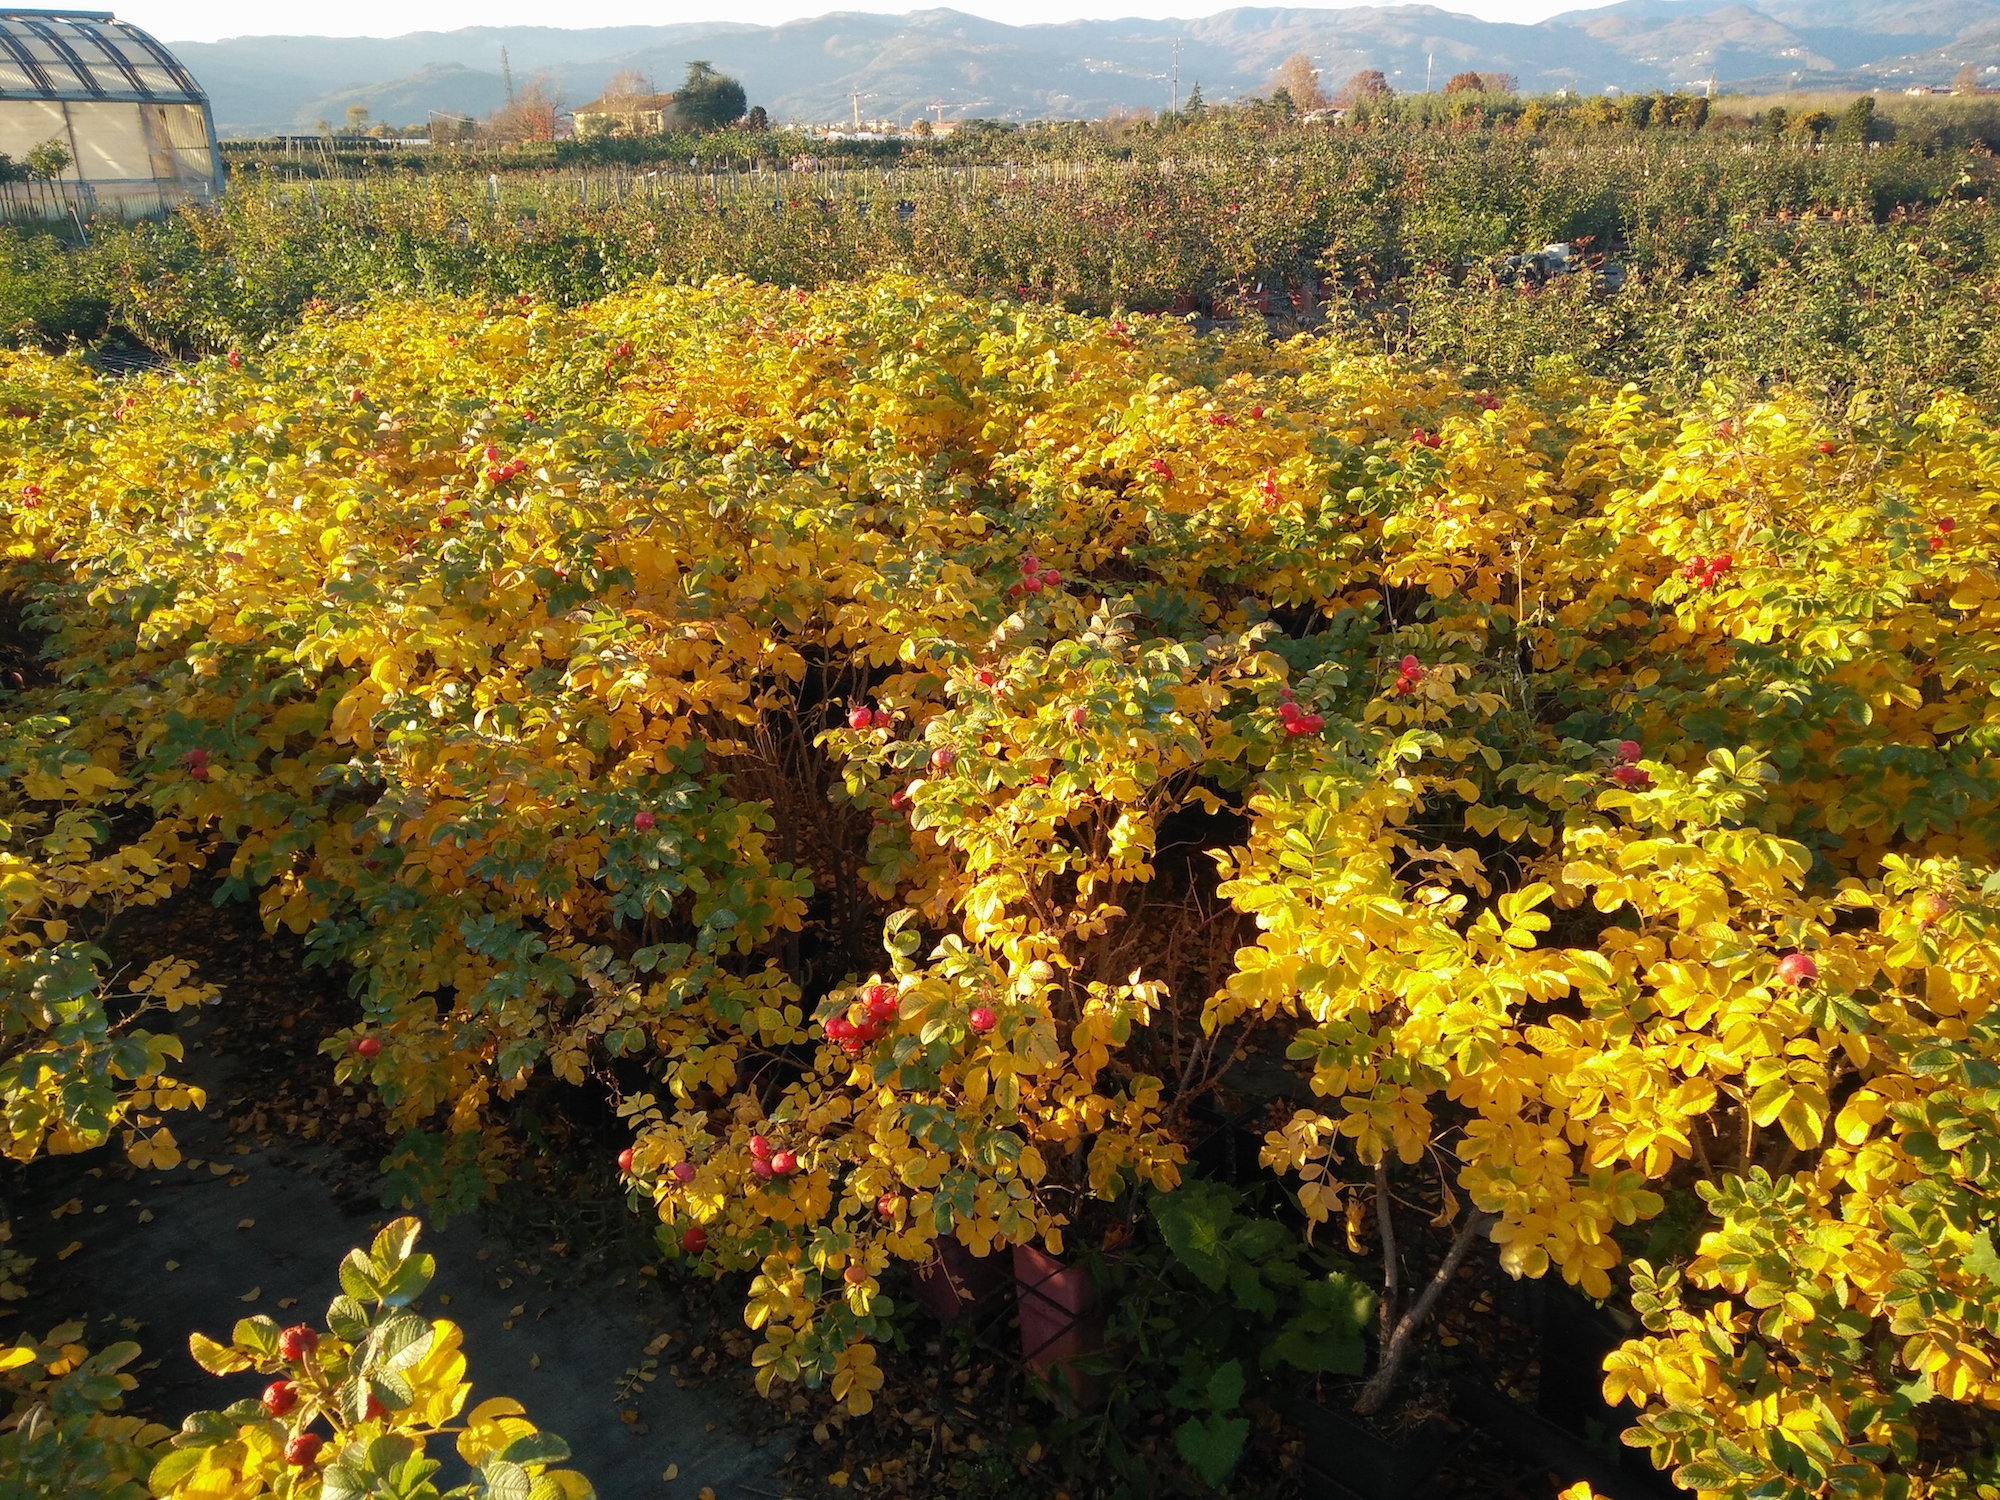 rugose in autunno